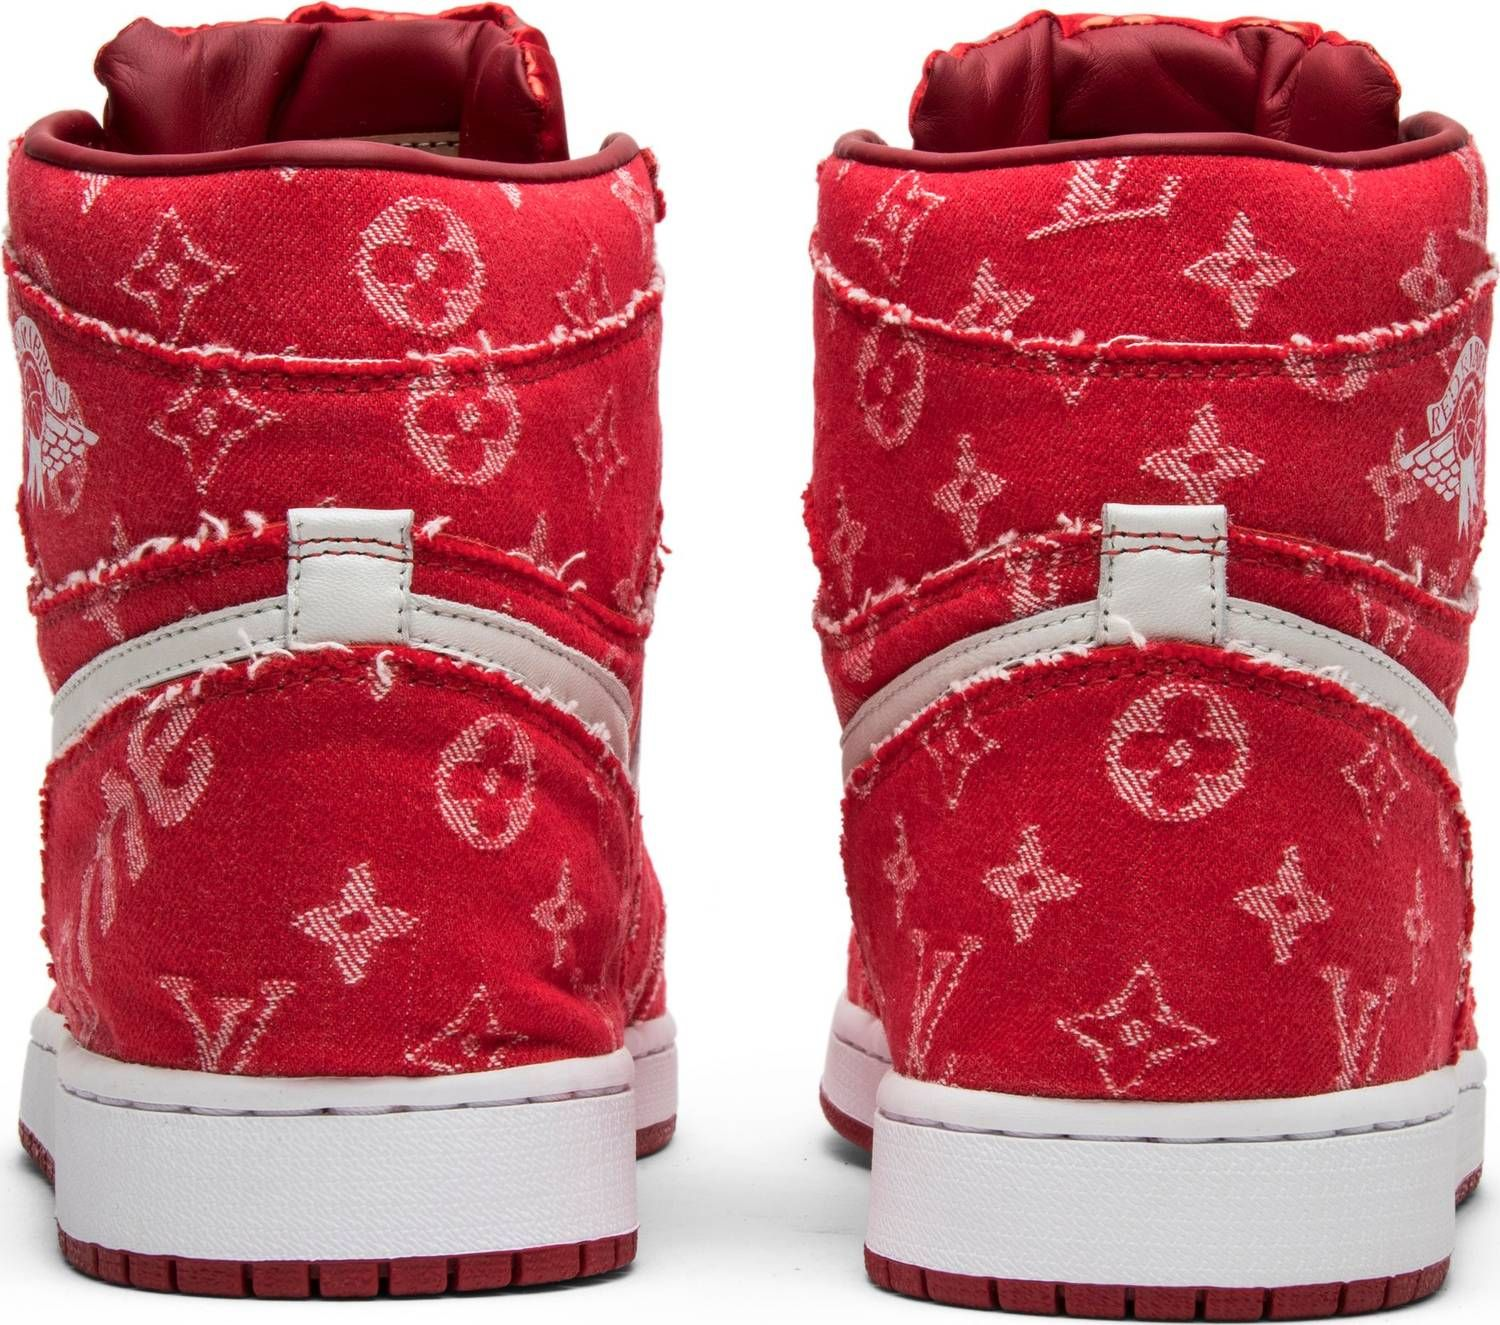 best service 3196b 736a5 Air Jordan Supreme x Louis Vuitton x Red Ribbon Recon x Air Jordan 1 Retro  High